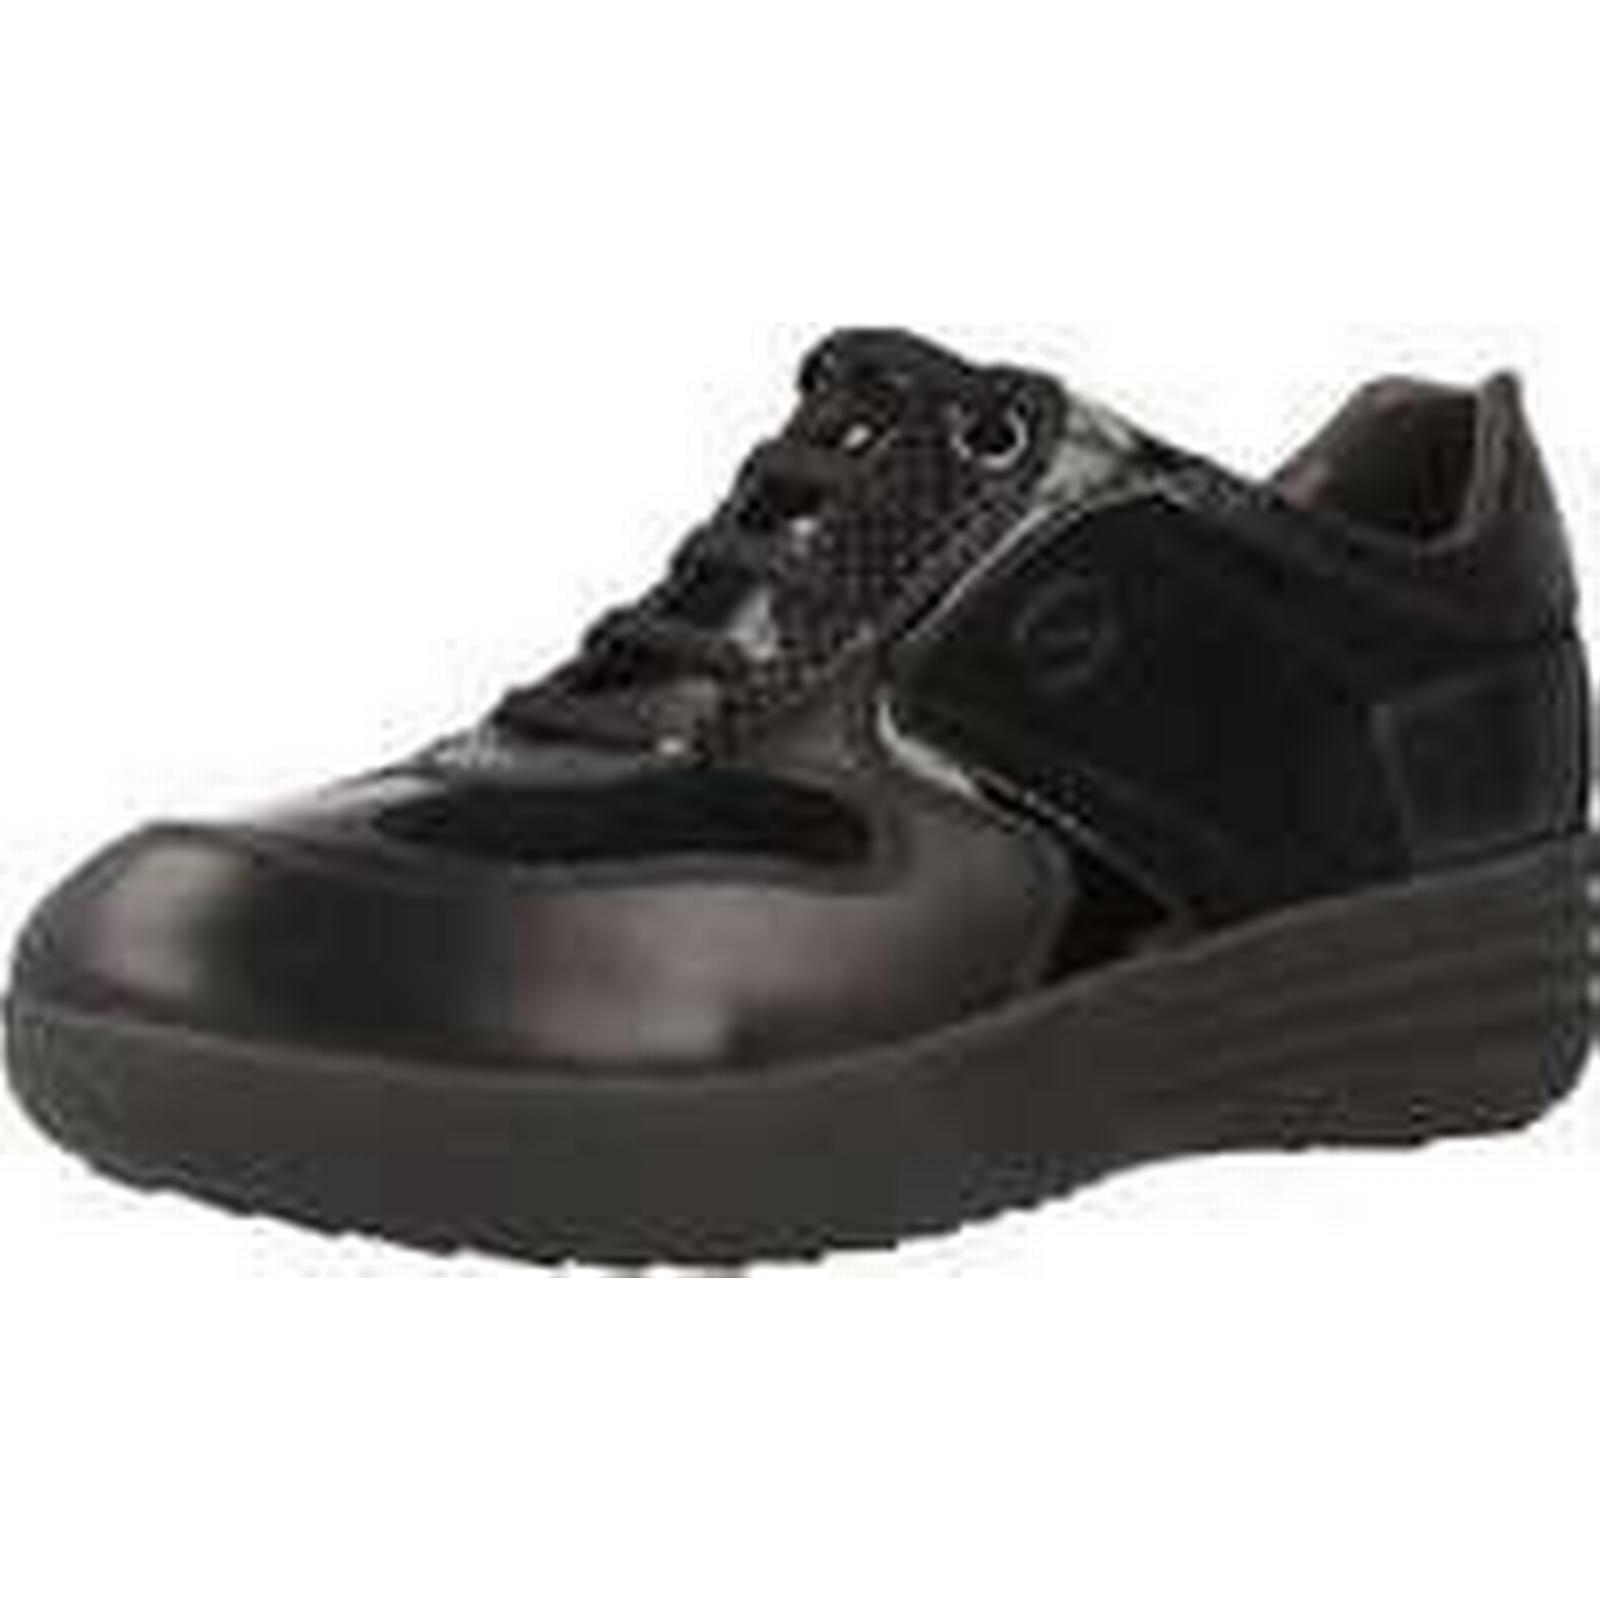 Spartoo.co.uk Stonefly (Trainers) ROMY 3 women's Shoes (Trainers) Stonefly in Black 64db60